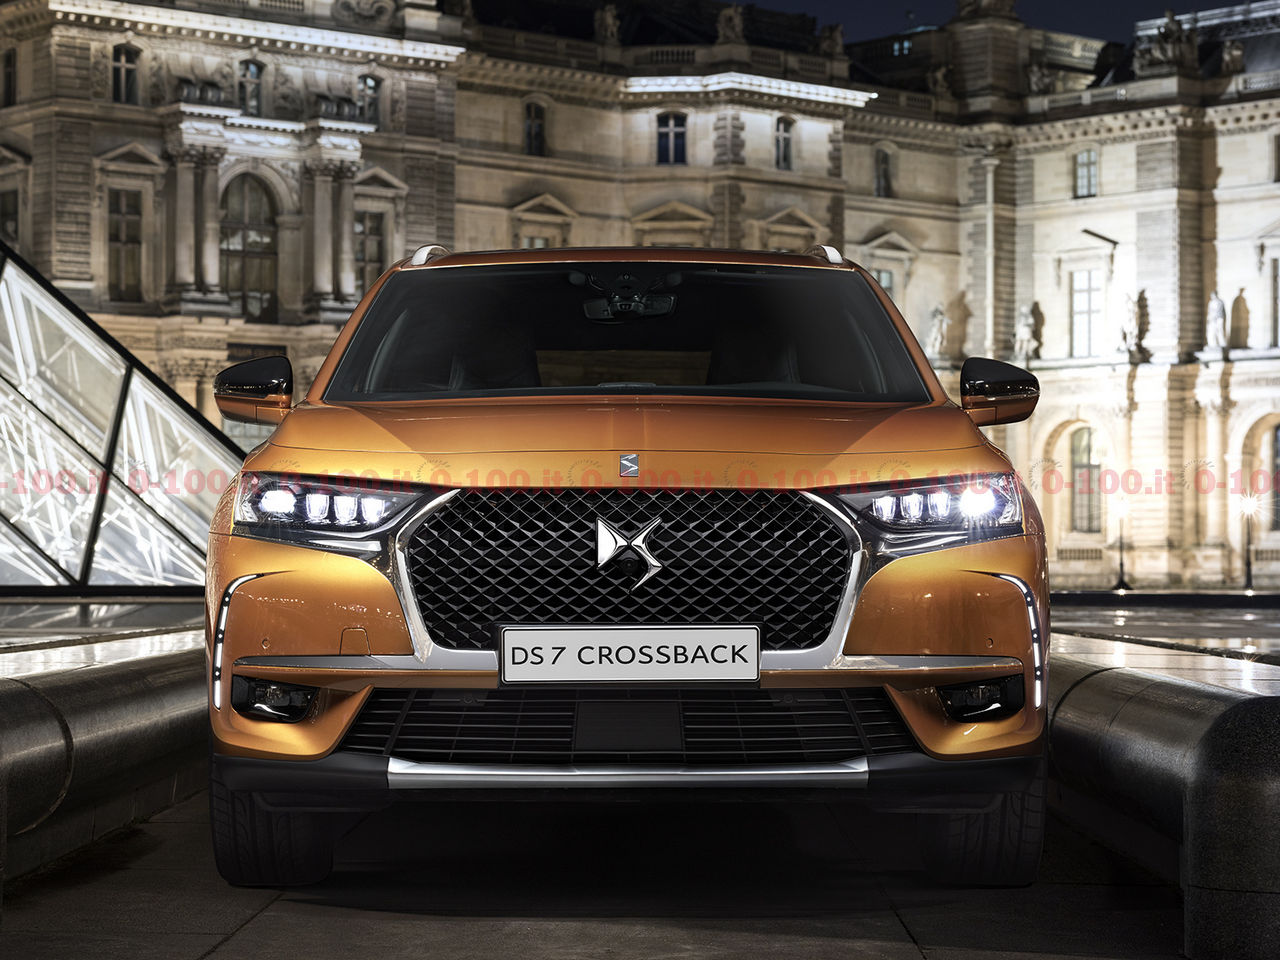 ds7-crossback_2017_0-100_3